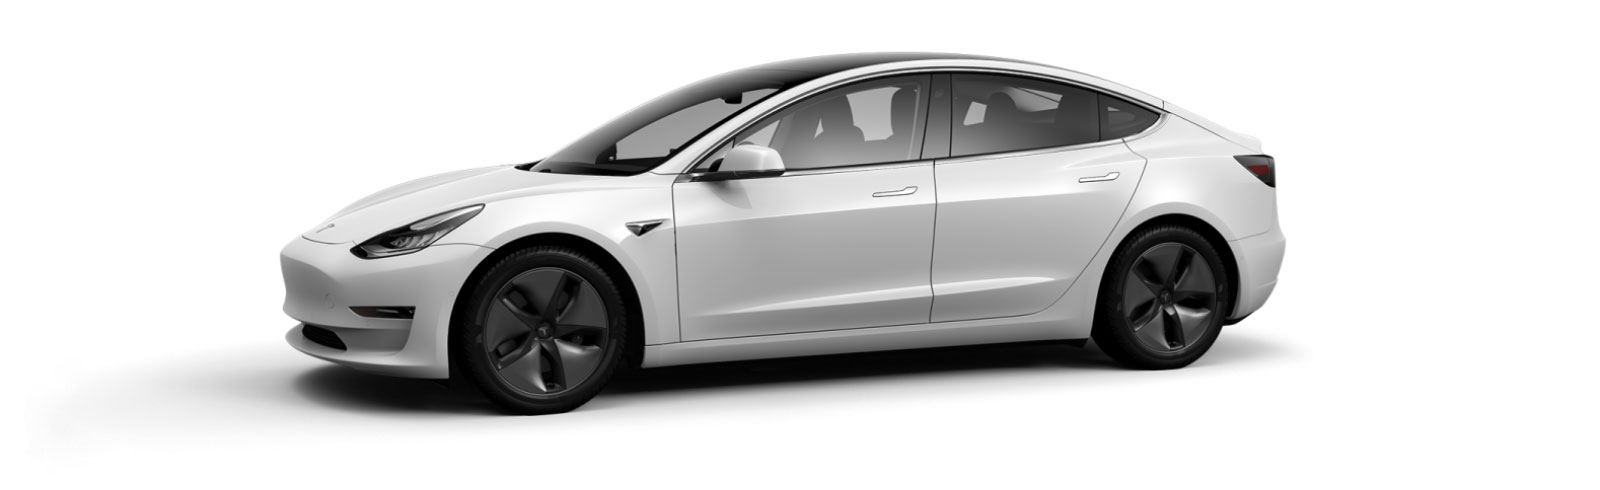 Tesla Model 3 is now available in South Korea